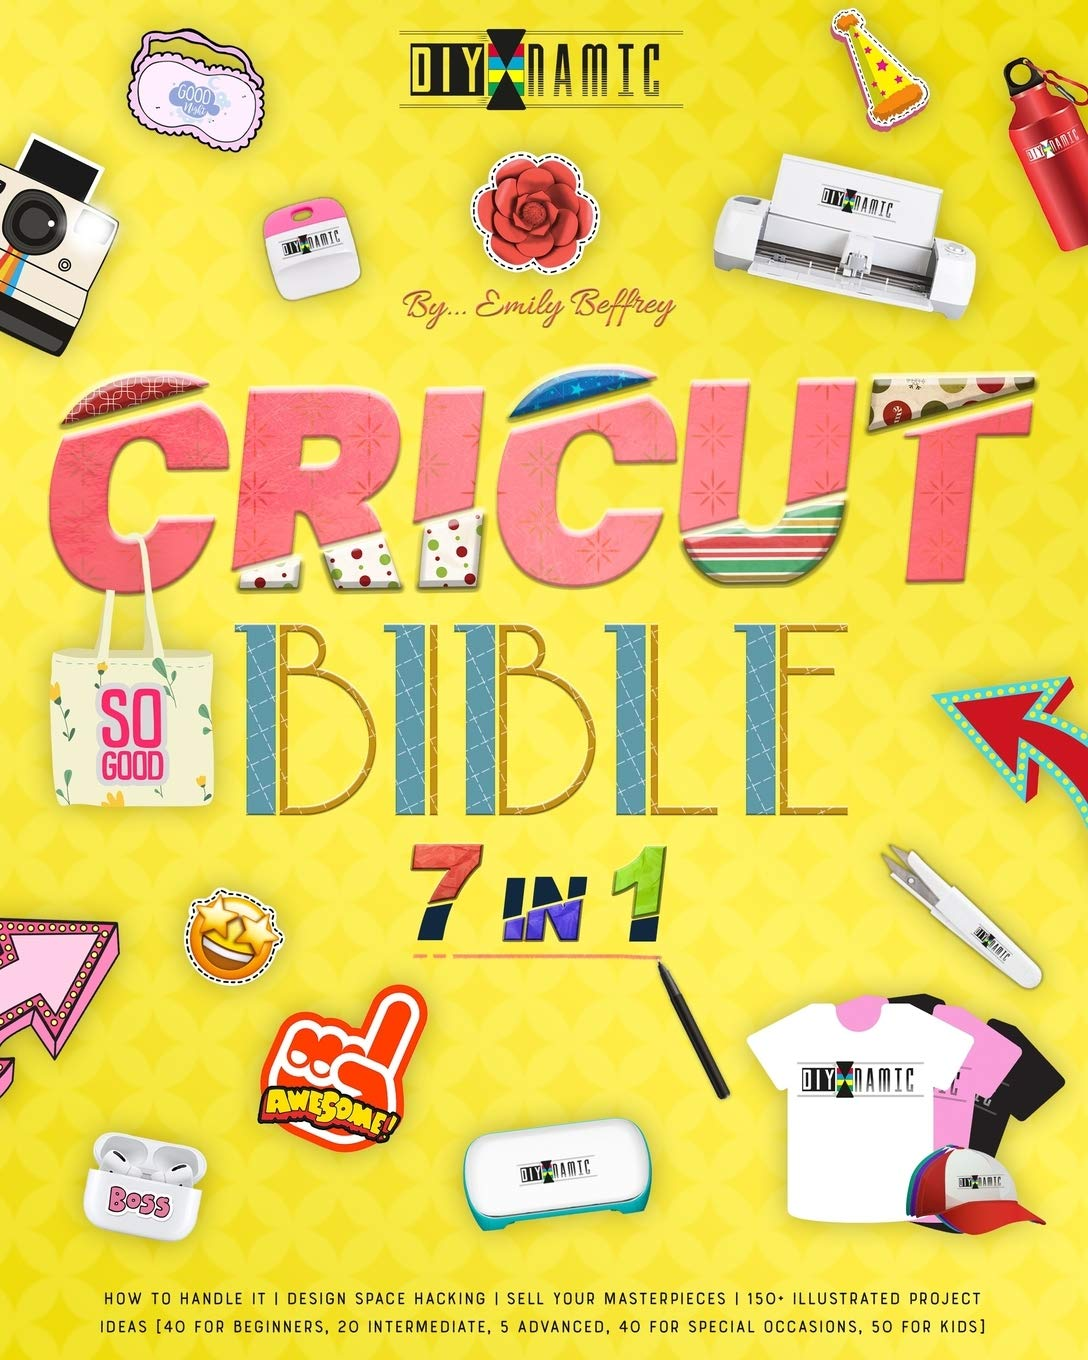 CRICUT BIBLE: How to Handle It   Design Space Hacking   150+ Illustrated Project Ideas [40 for Beginners, 20 Intermediate, 5 Advanced, 40 Special Occasions, 50 Kids]   Sell Your Masterpieces